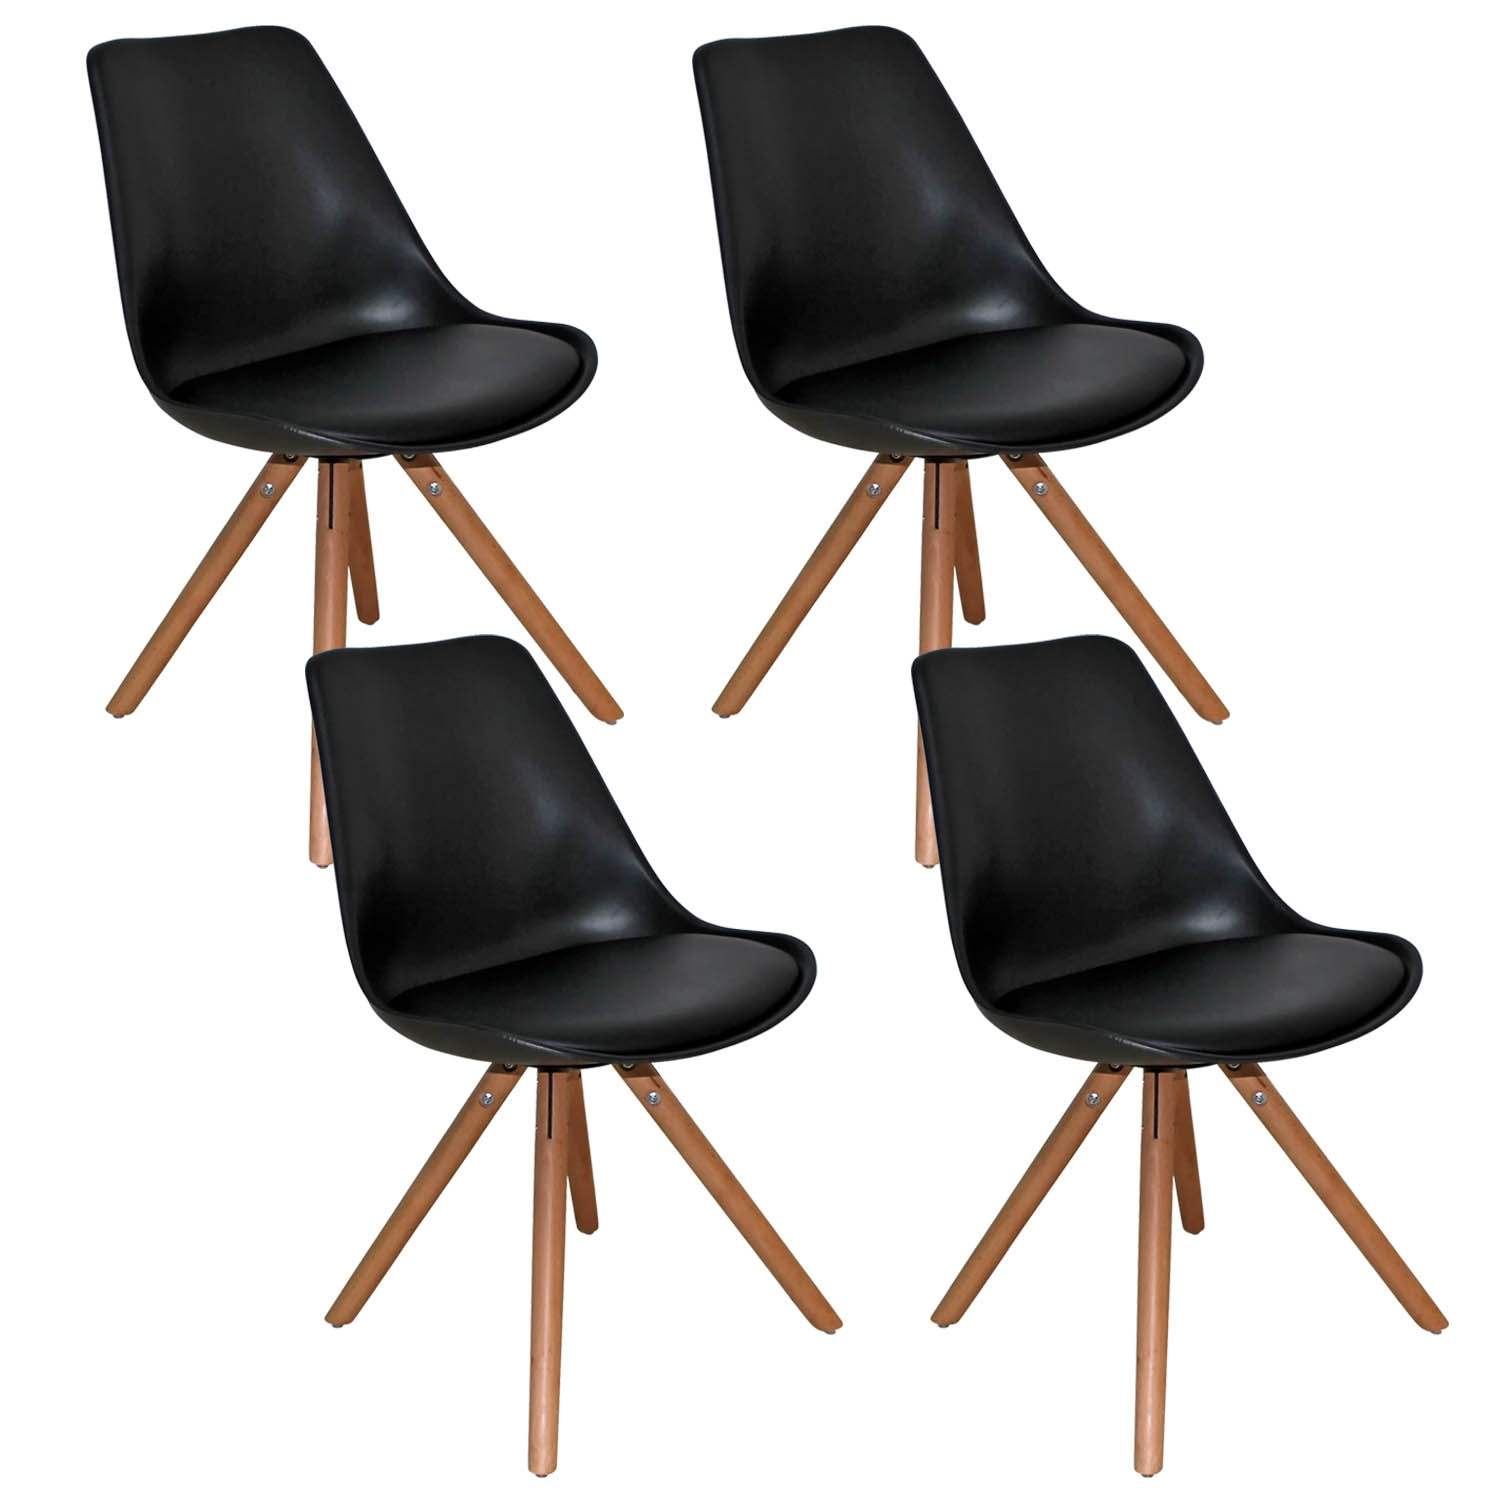 Deco in paris lot de 4 chaises design noir velta velta - Lot de 4 chaises design ...